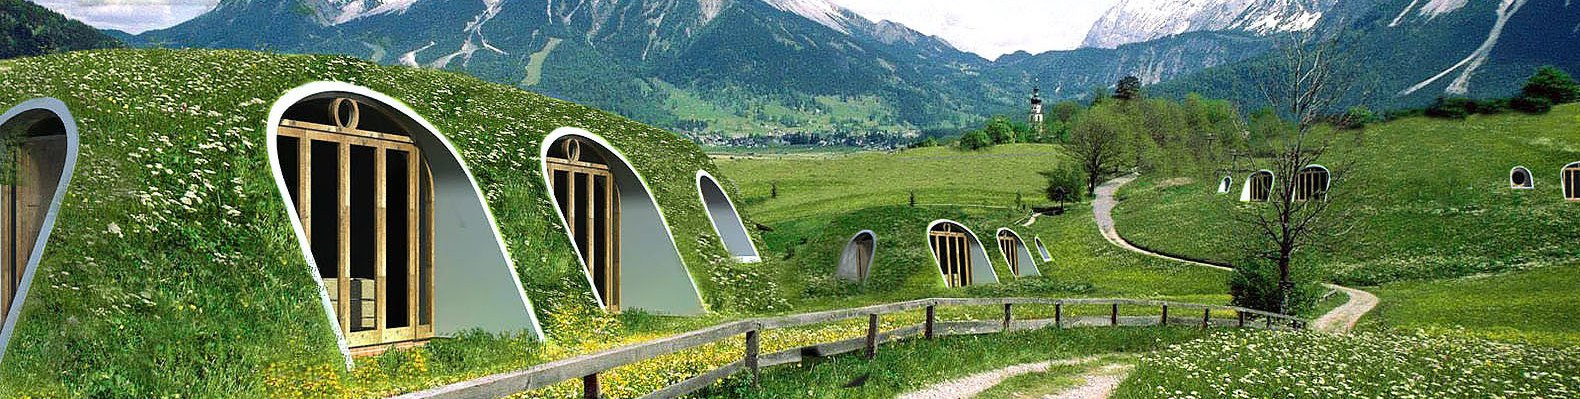 A Green Roofed Hobbit Home Anyone Can Build In Just 3 Days | Inhabitat   Green  Design, Innovation, Architecture, Green Building